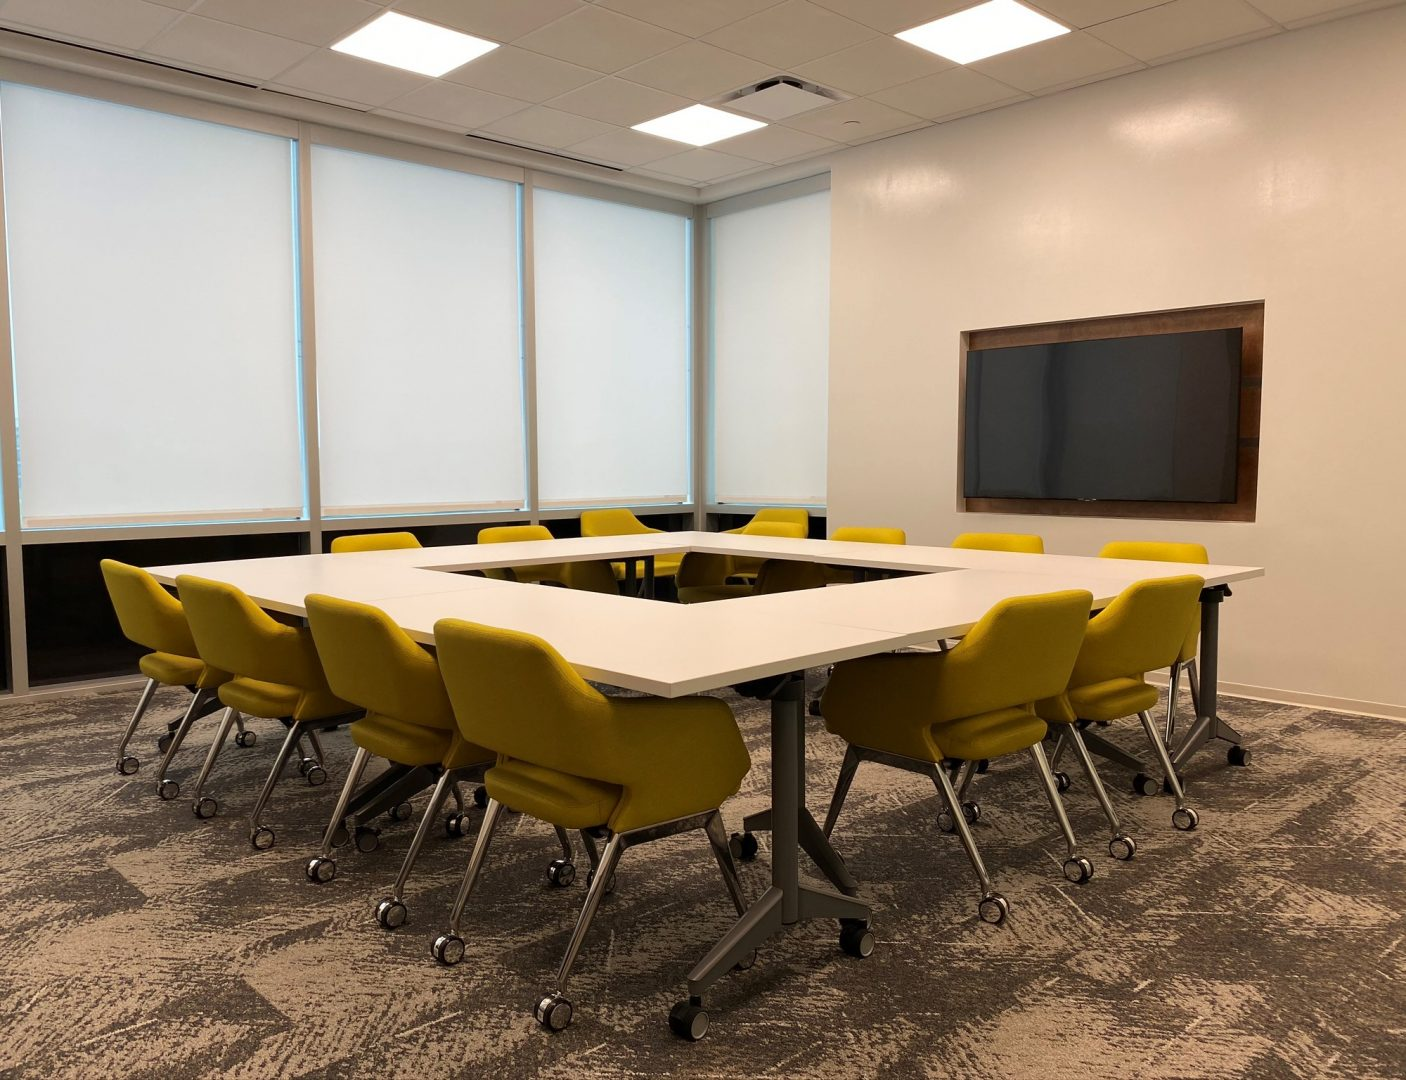 Healthcare-Modern-Waiting-Room-Design-Conference-Room